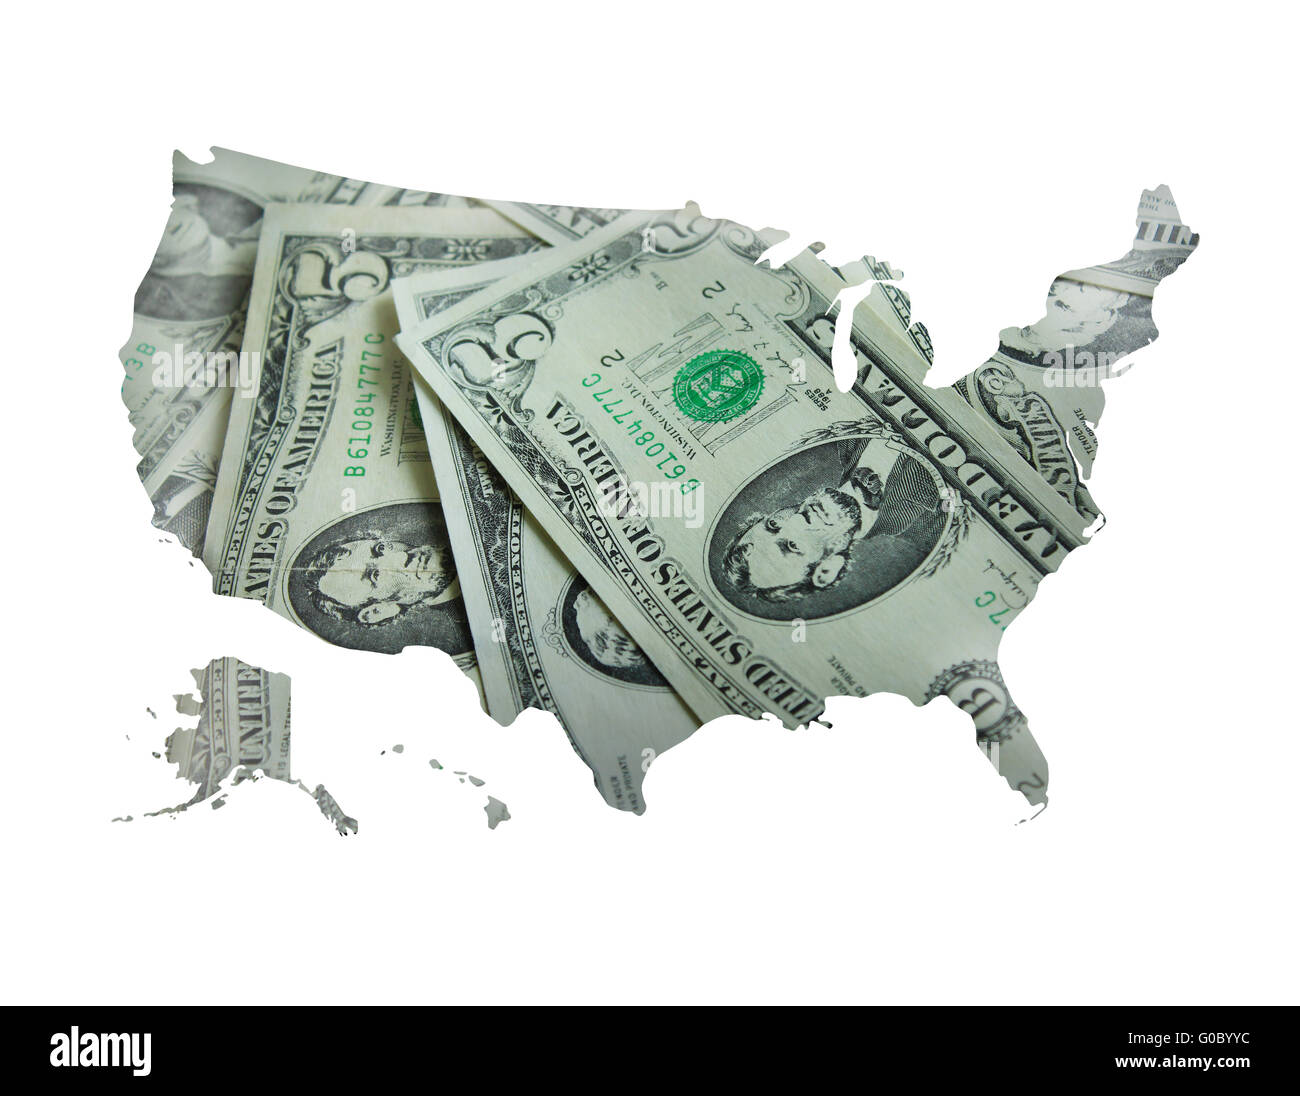 map of United States of America made from dollars Stock ... Image Of United States Map Dollars on puerto rico dollar, kelsey dollar, bajan dollar, technology dollar, australia's dollar, singapore dollar, canadian dollar, snowflake dollar, 2014 us dollar, lizzie dollar, laos dollar, new taiwan dollar, us treasury dollar, professional dollar, world trade dollar, ruble dollar, us hundred dollar, argentine dollar, new zealand dollar, botswana dollar,